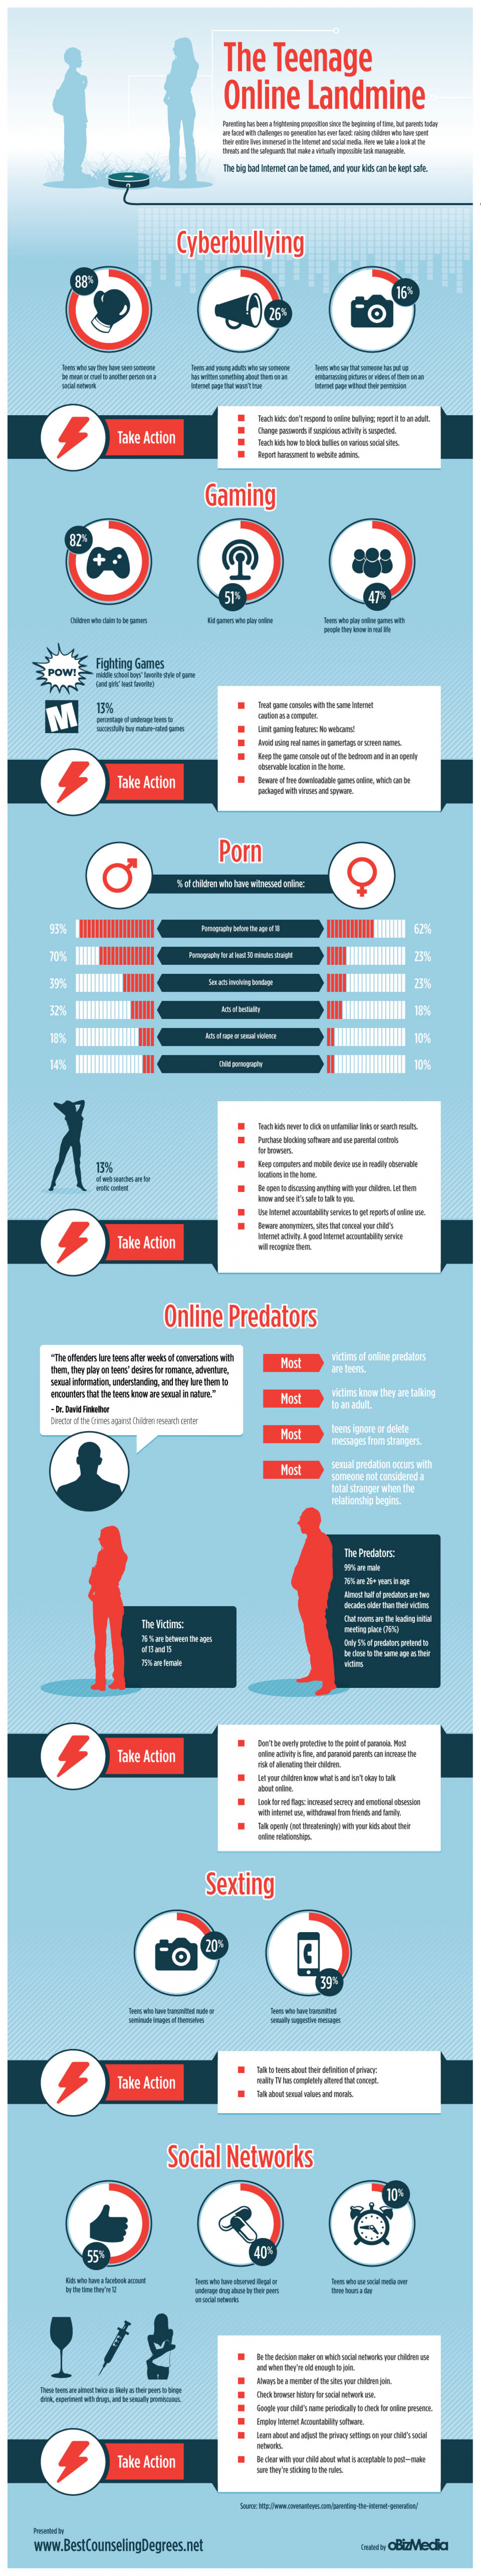 The Teenage Online Landmine Infographic